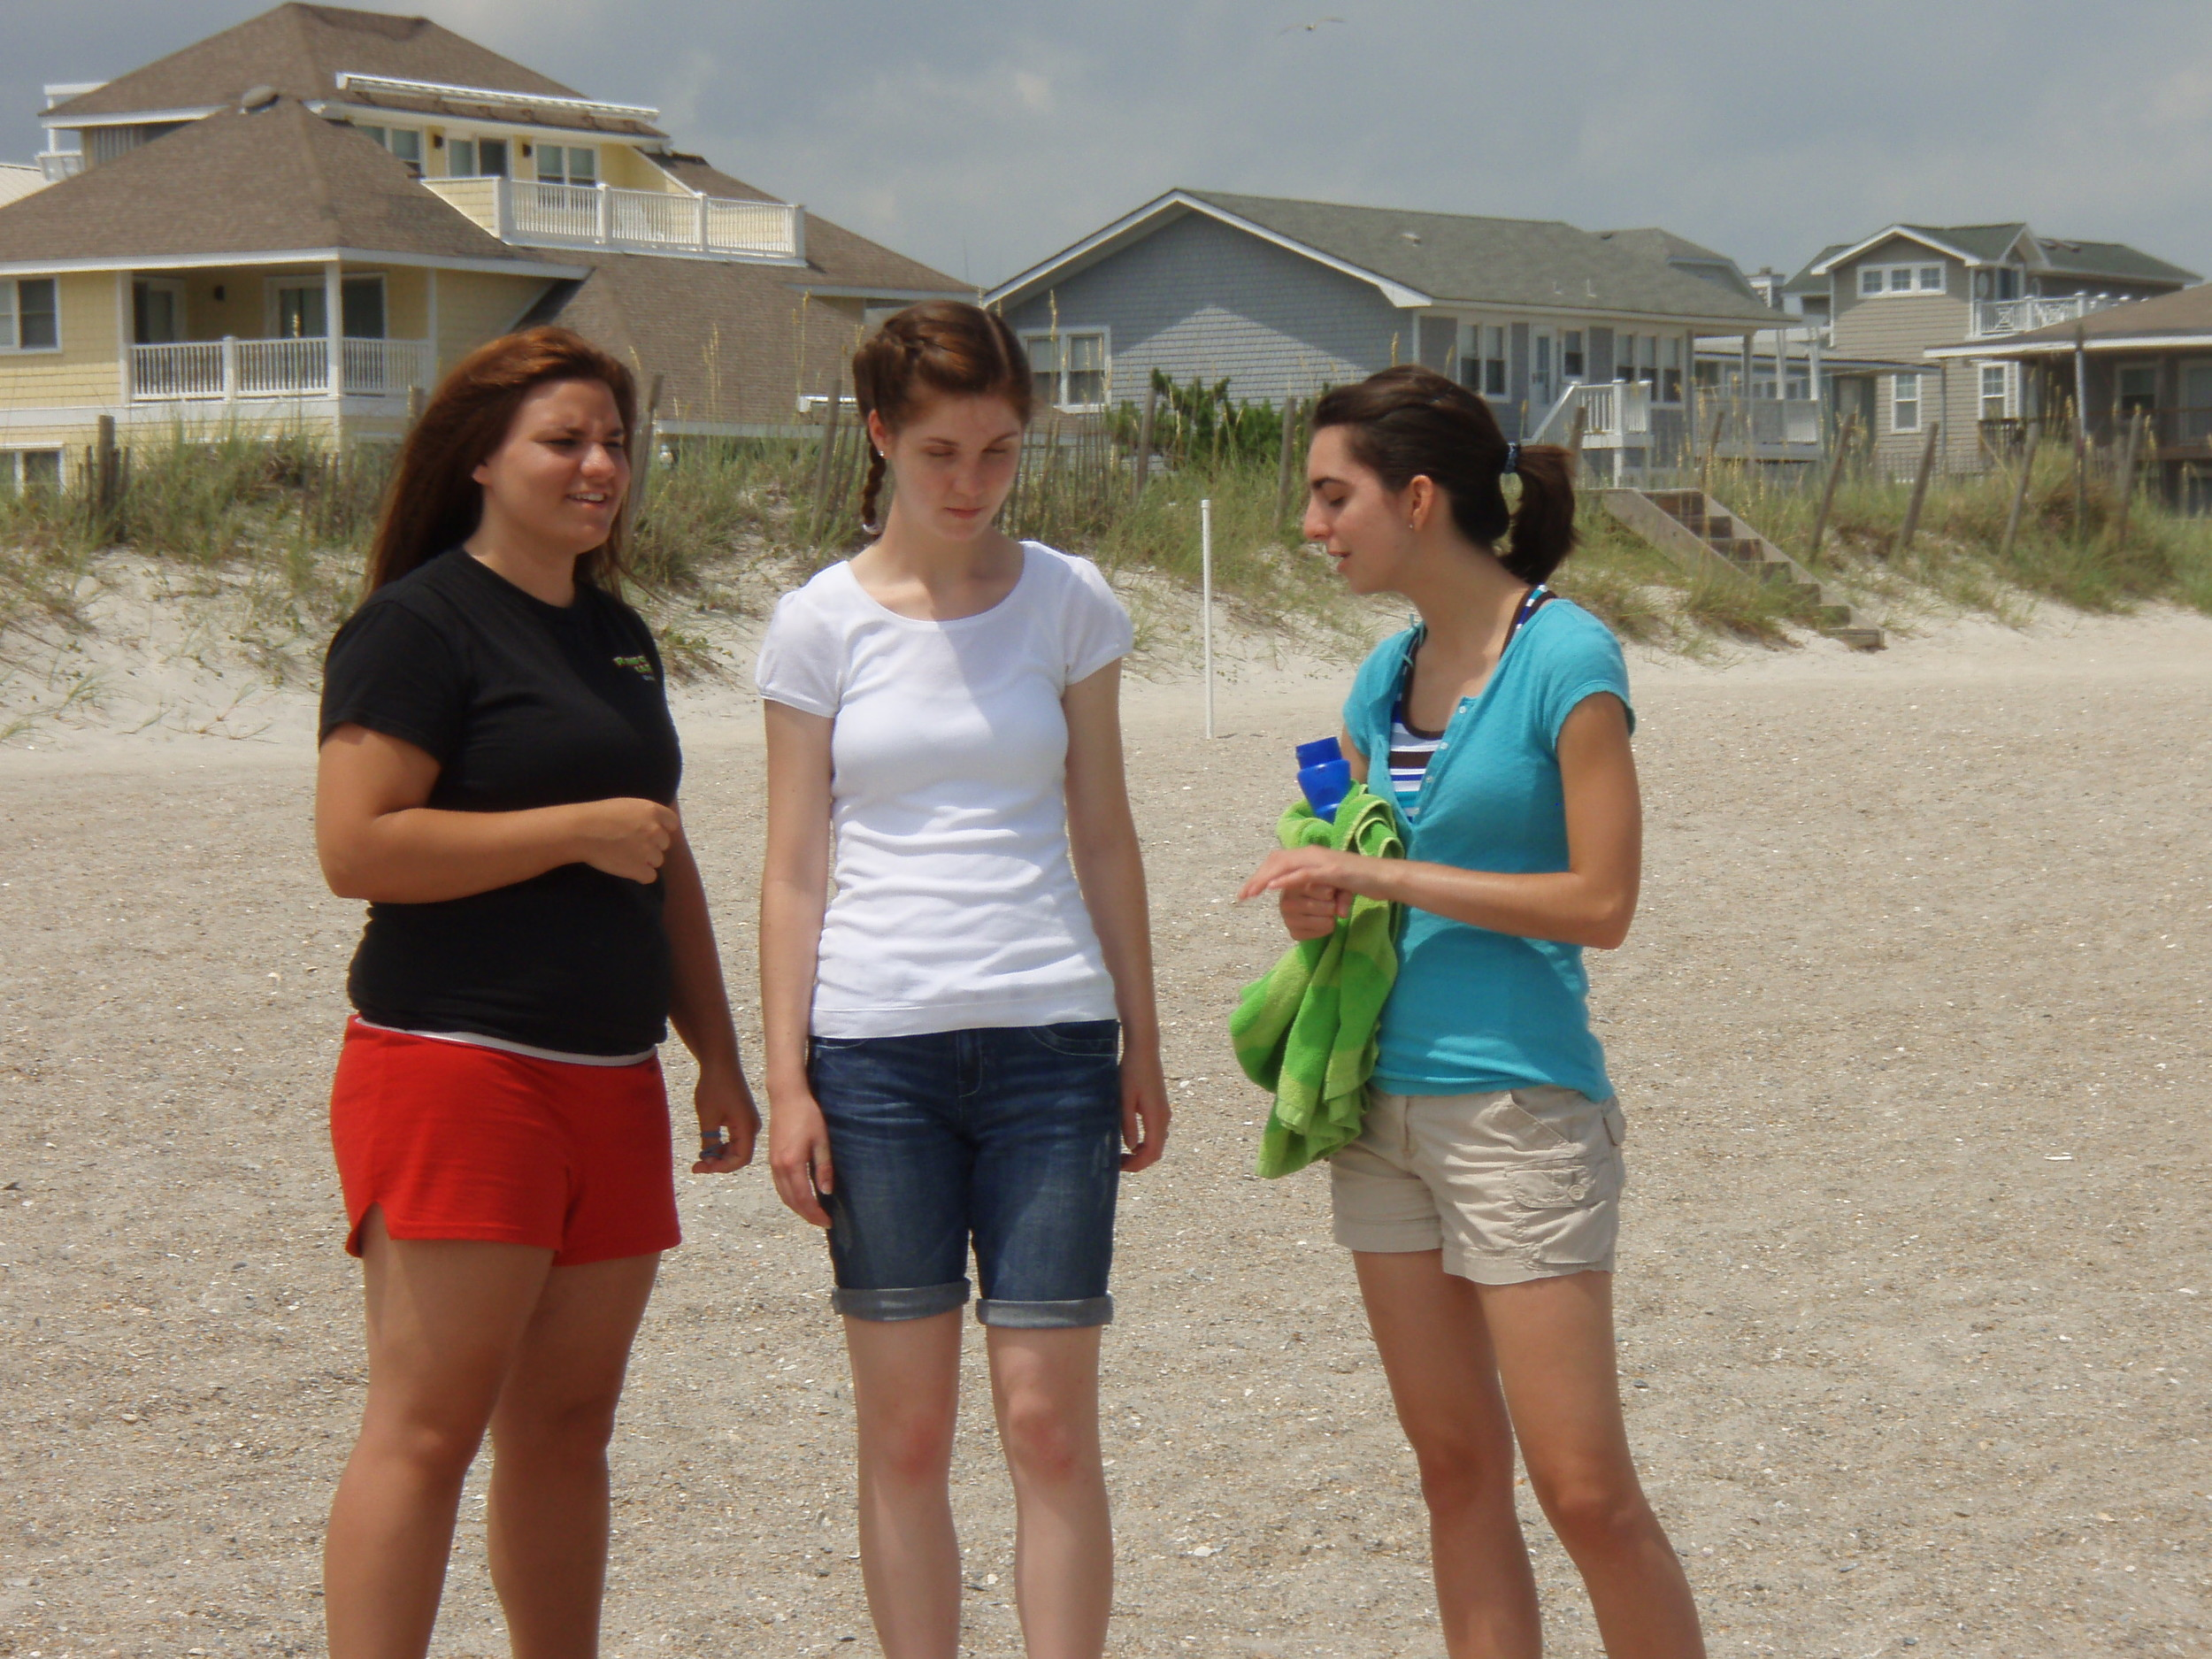 Some students are out sharing the Gospel of Christ on the beach.